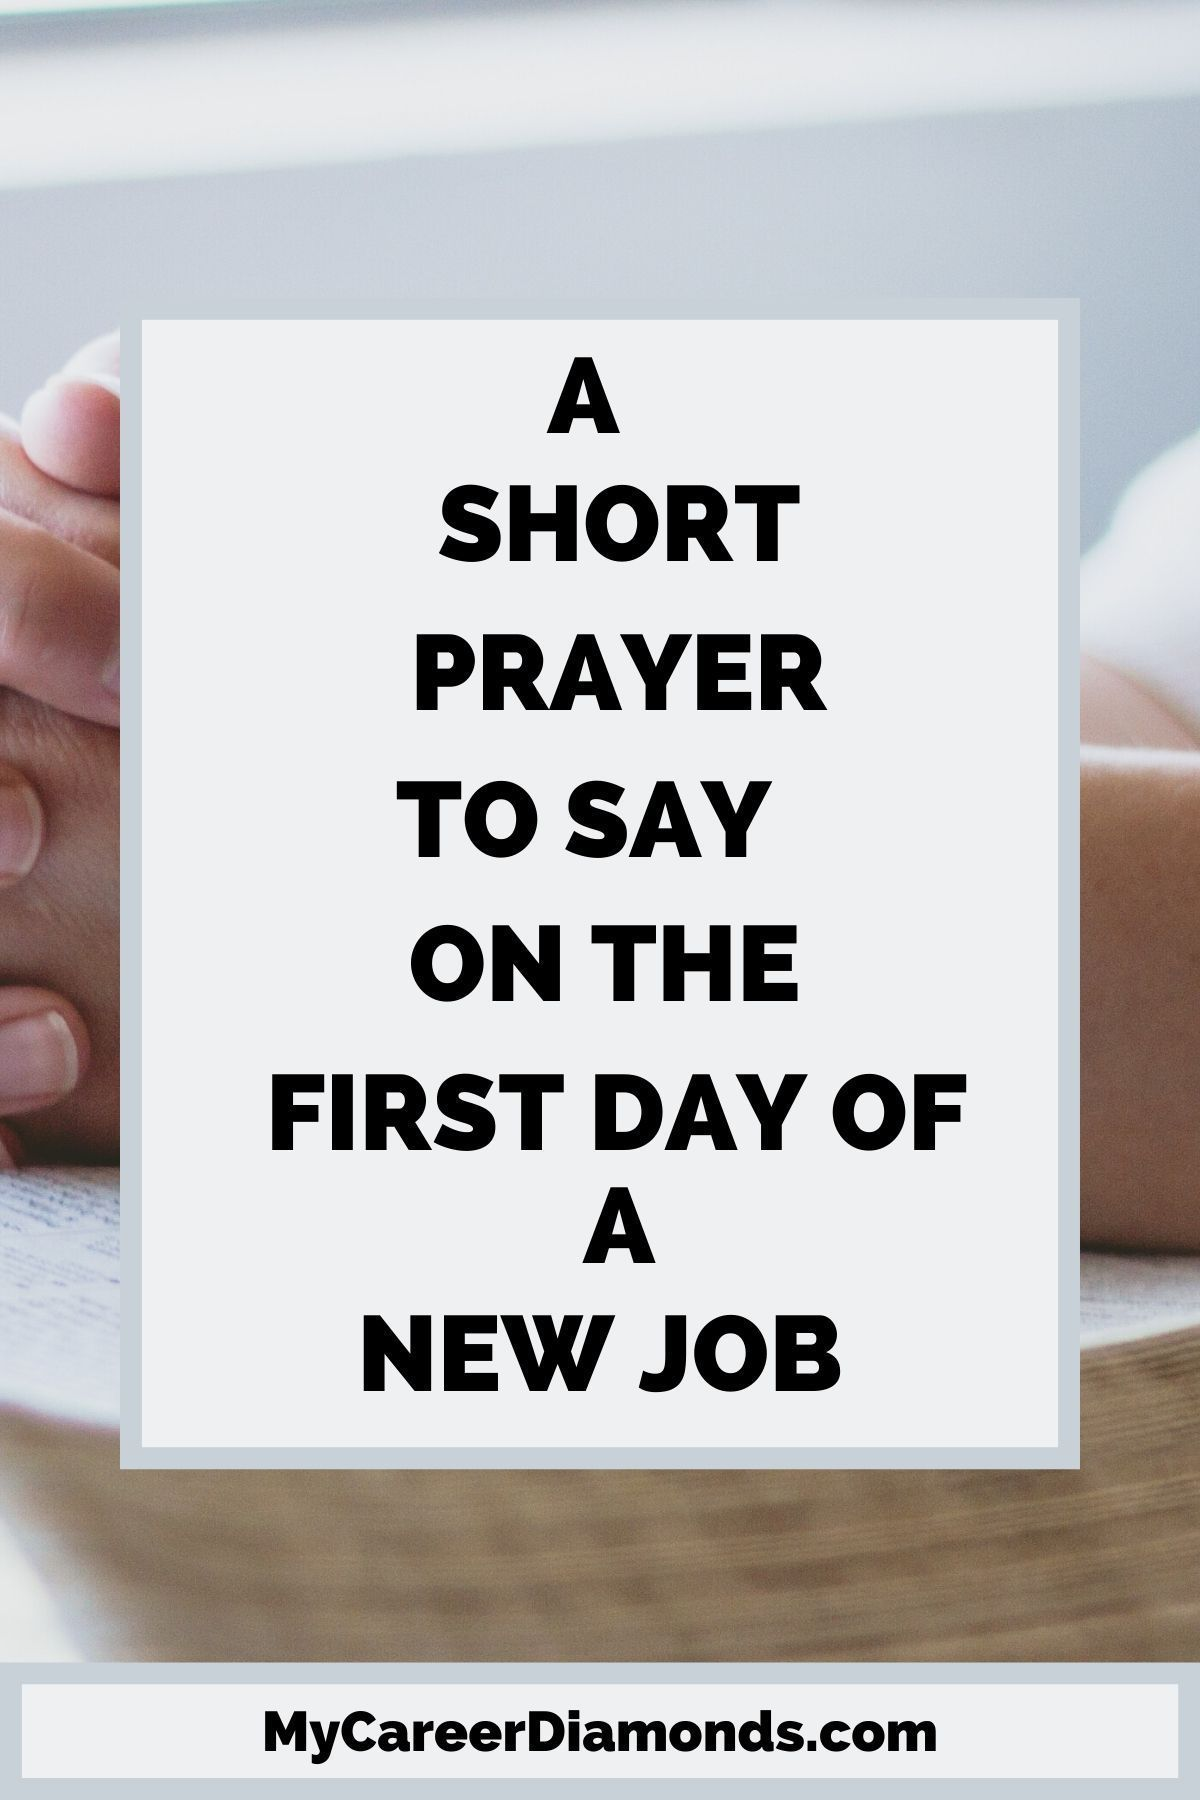 A Short Prayer To Say On The First Day Of A New Job in